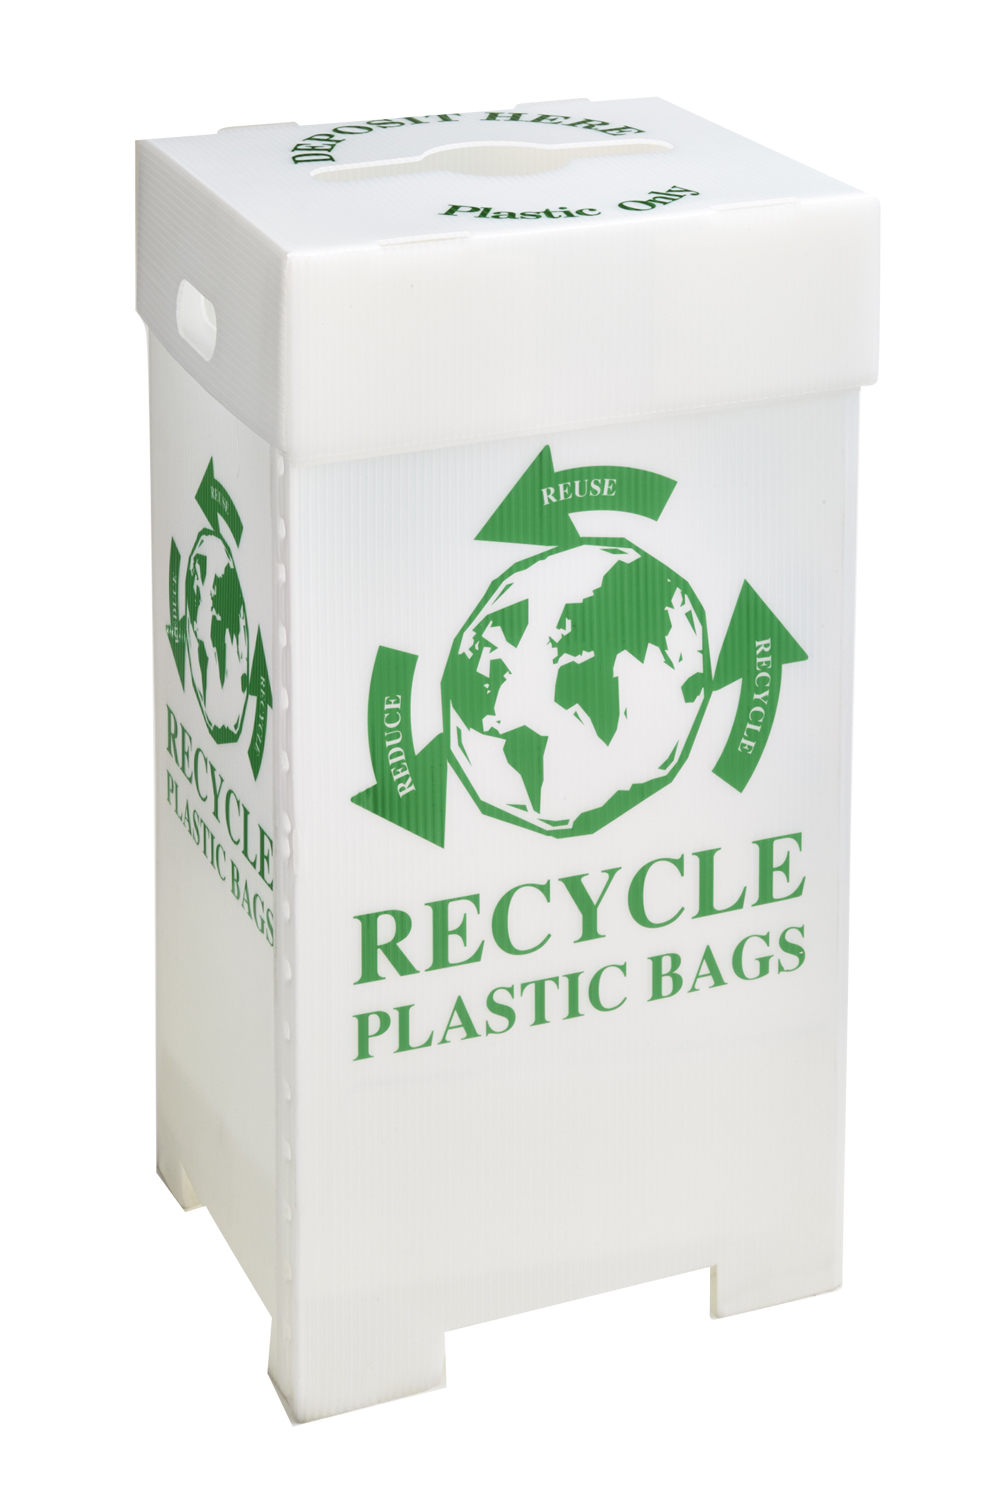 Grocery Plastic Bag Recycling Bin